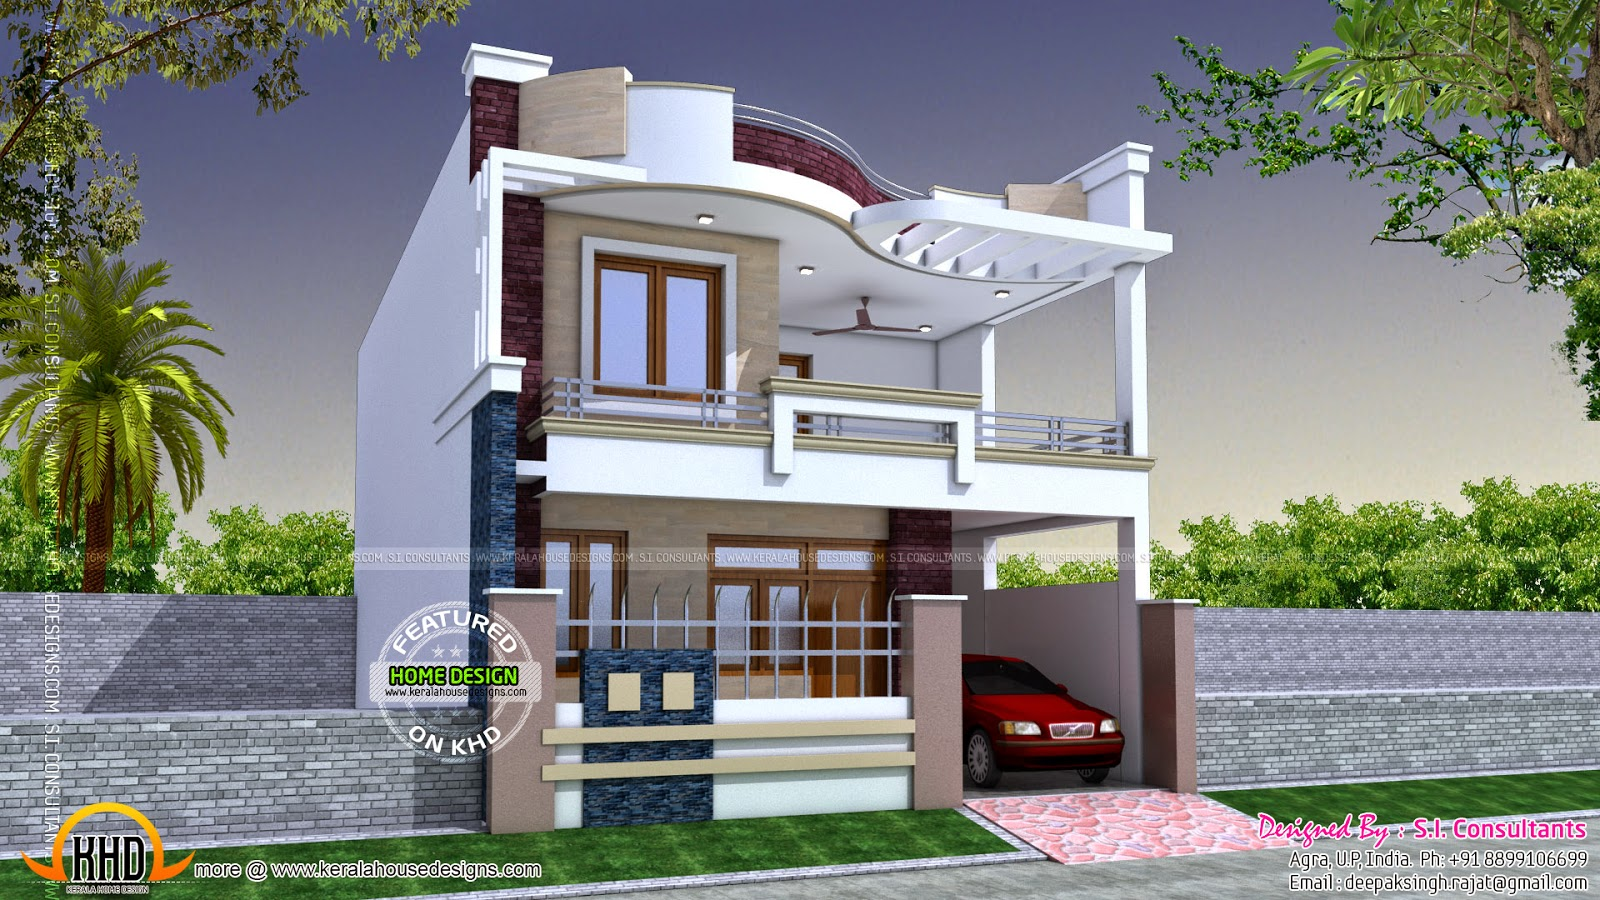 Modern indian home design kerala home design and floor plans for Contemporary home designs india